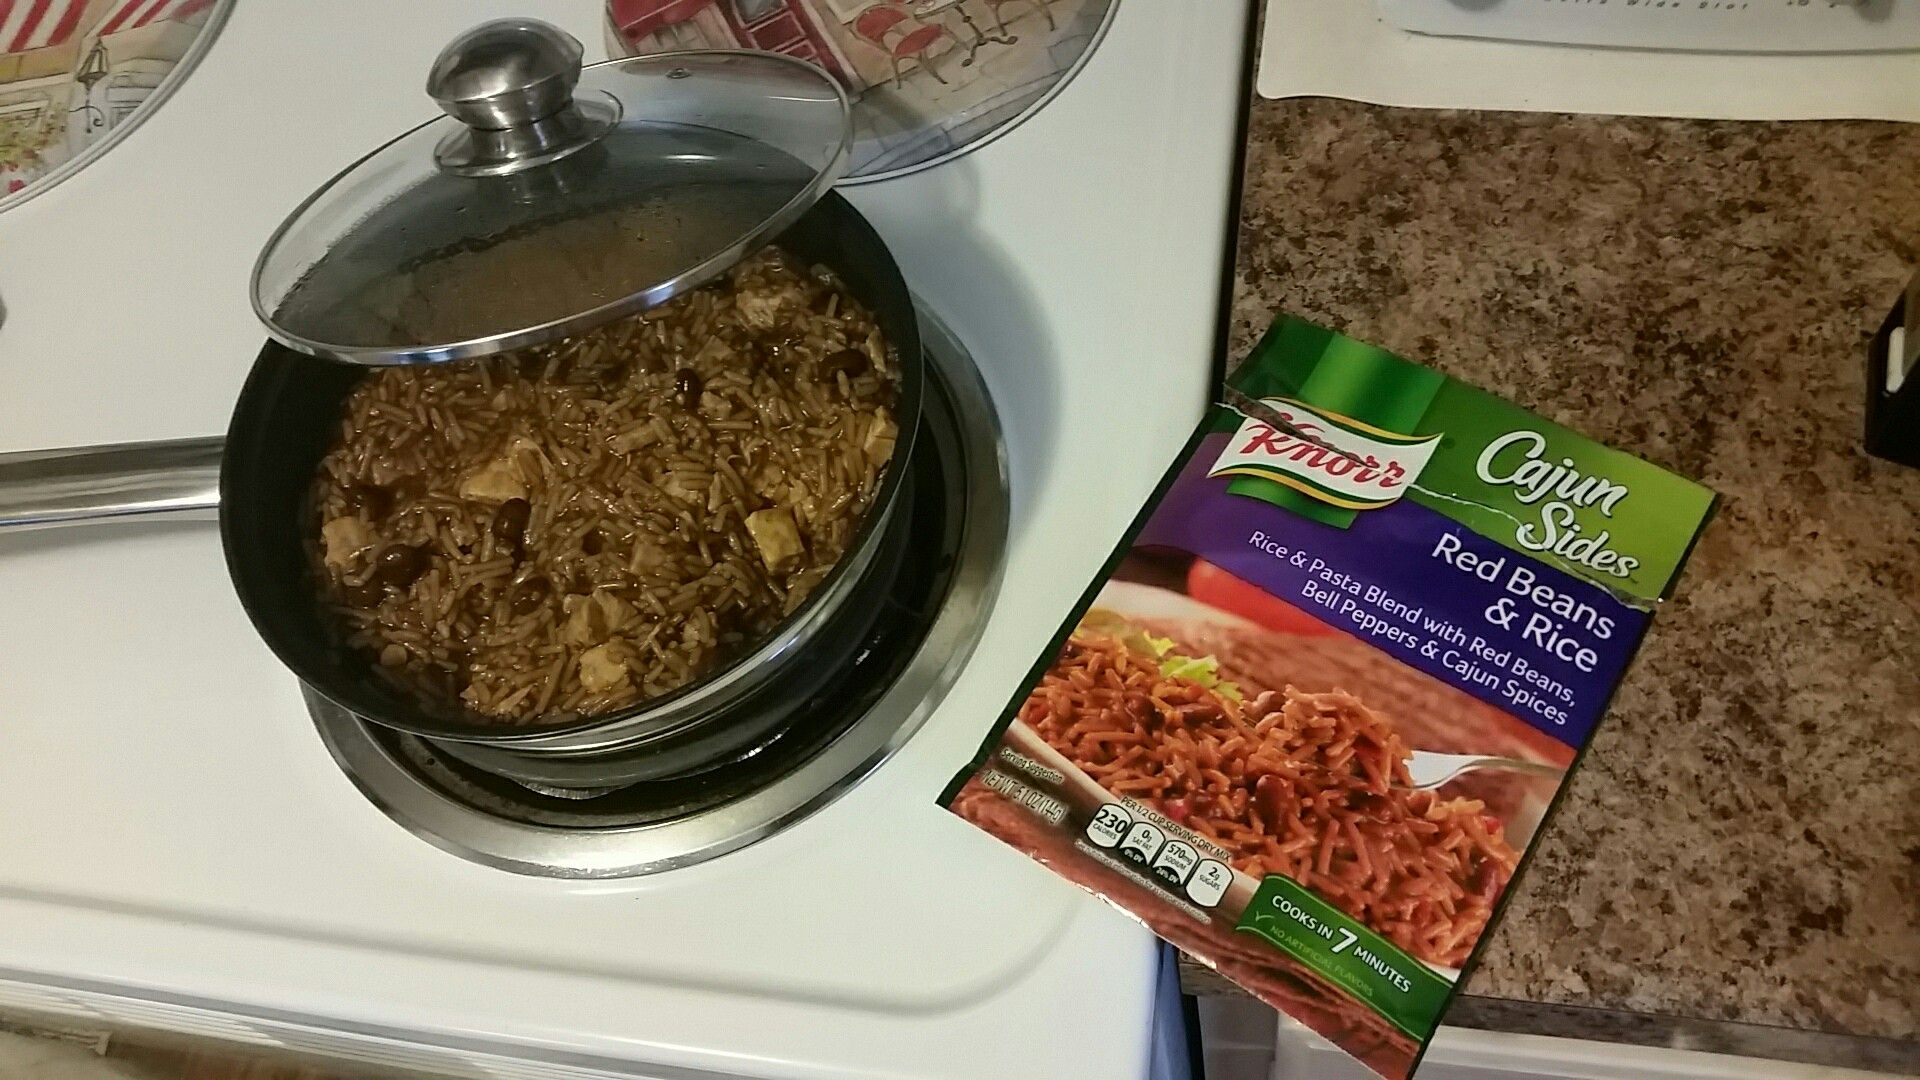 Cajunsides Red Beans Rice Sometimes I Like To Add Chicken When I Make A Knorr Side Dish For Complete Nutrition Great Recipes Great Recipes Cajun Rice